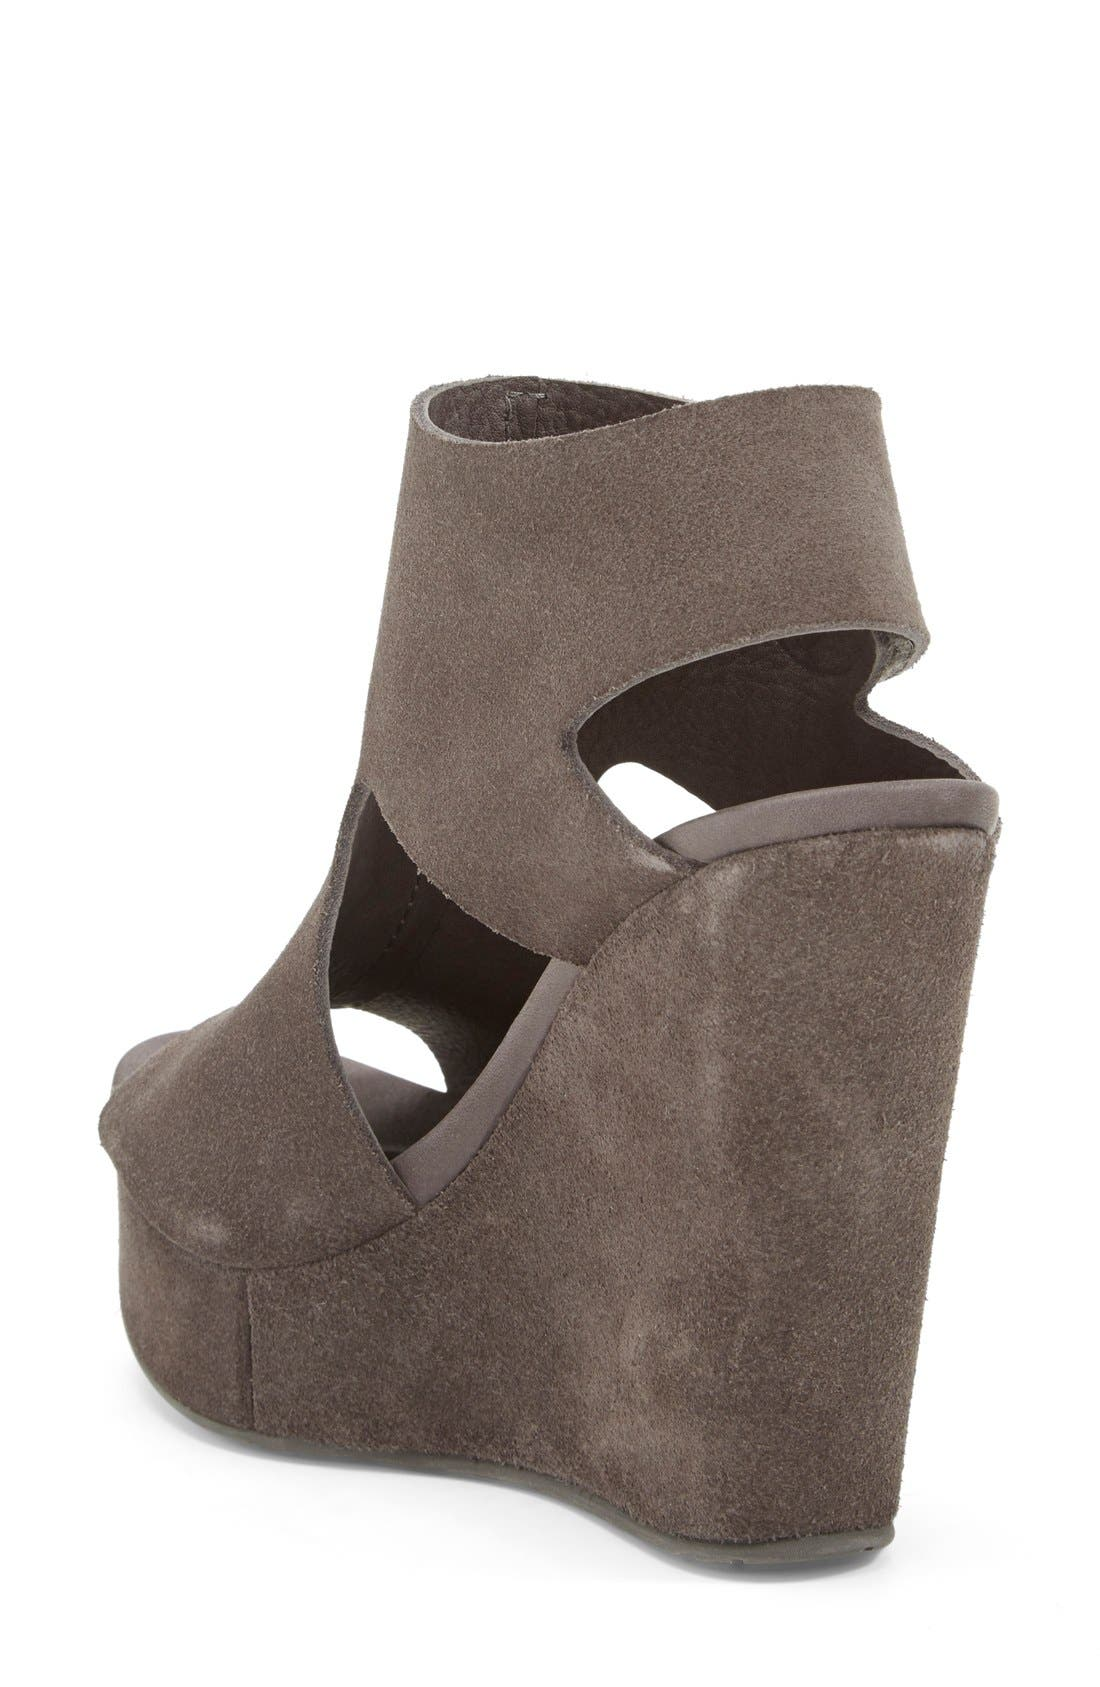 'Terence' Platform Wedge Sandal,                             Alternate thumbnail 4, color,                             020